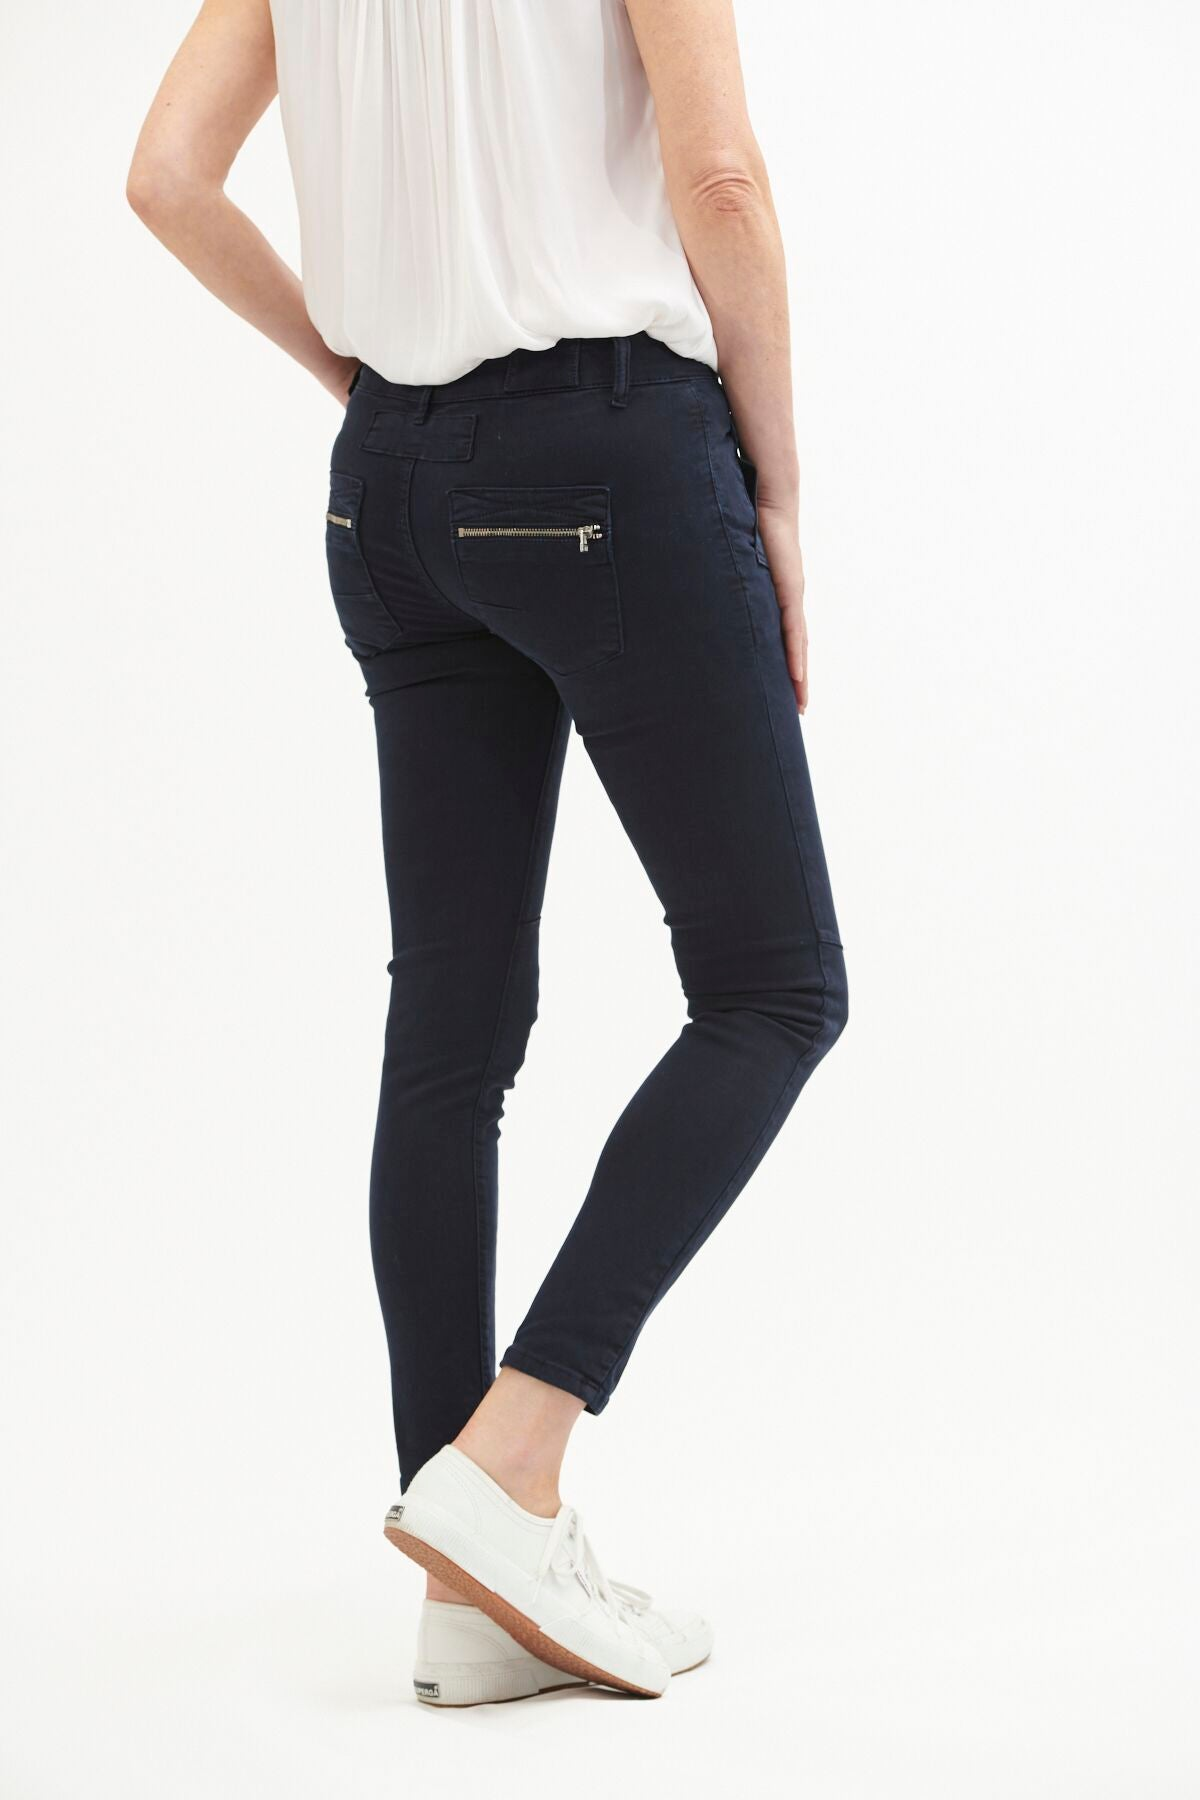 ITALIAN STAR - Button Jeans Indigo